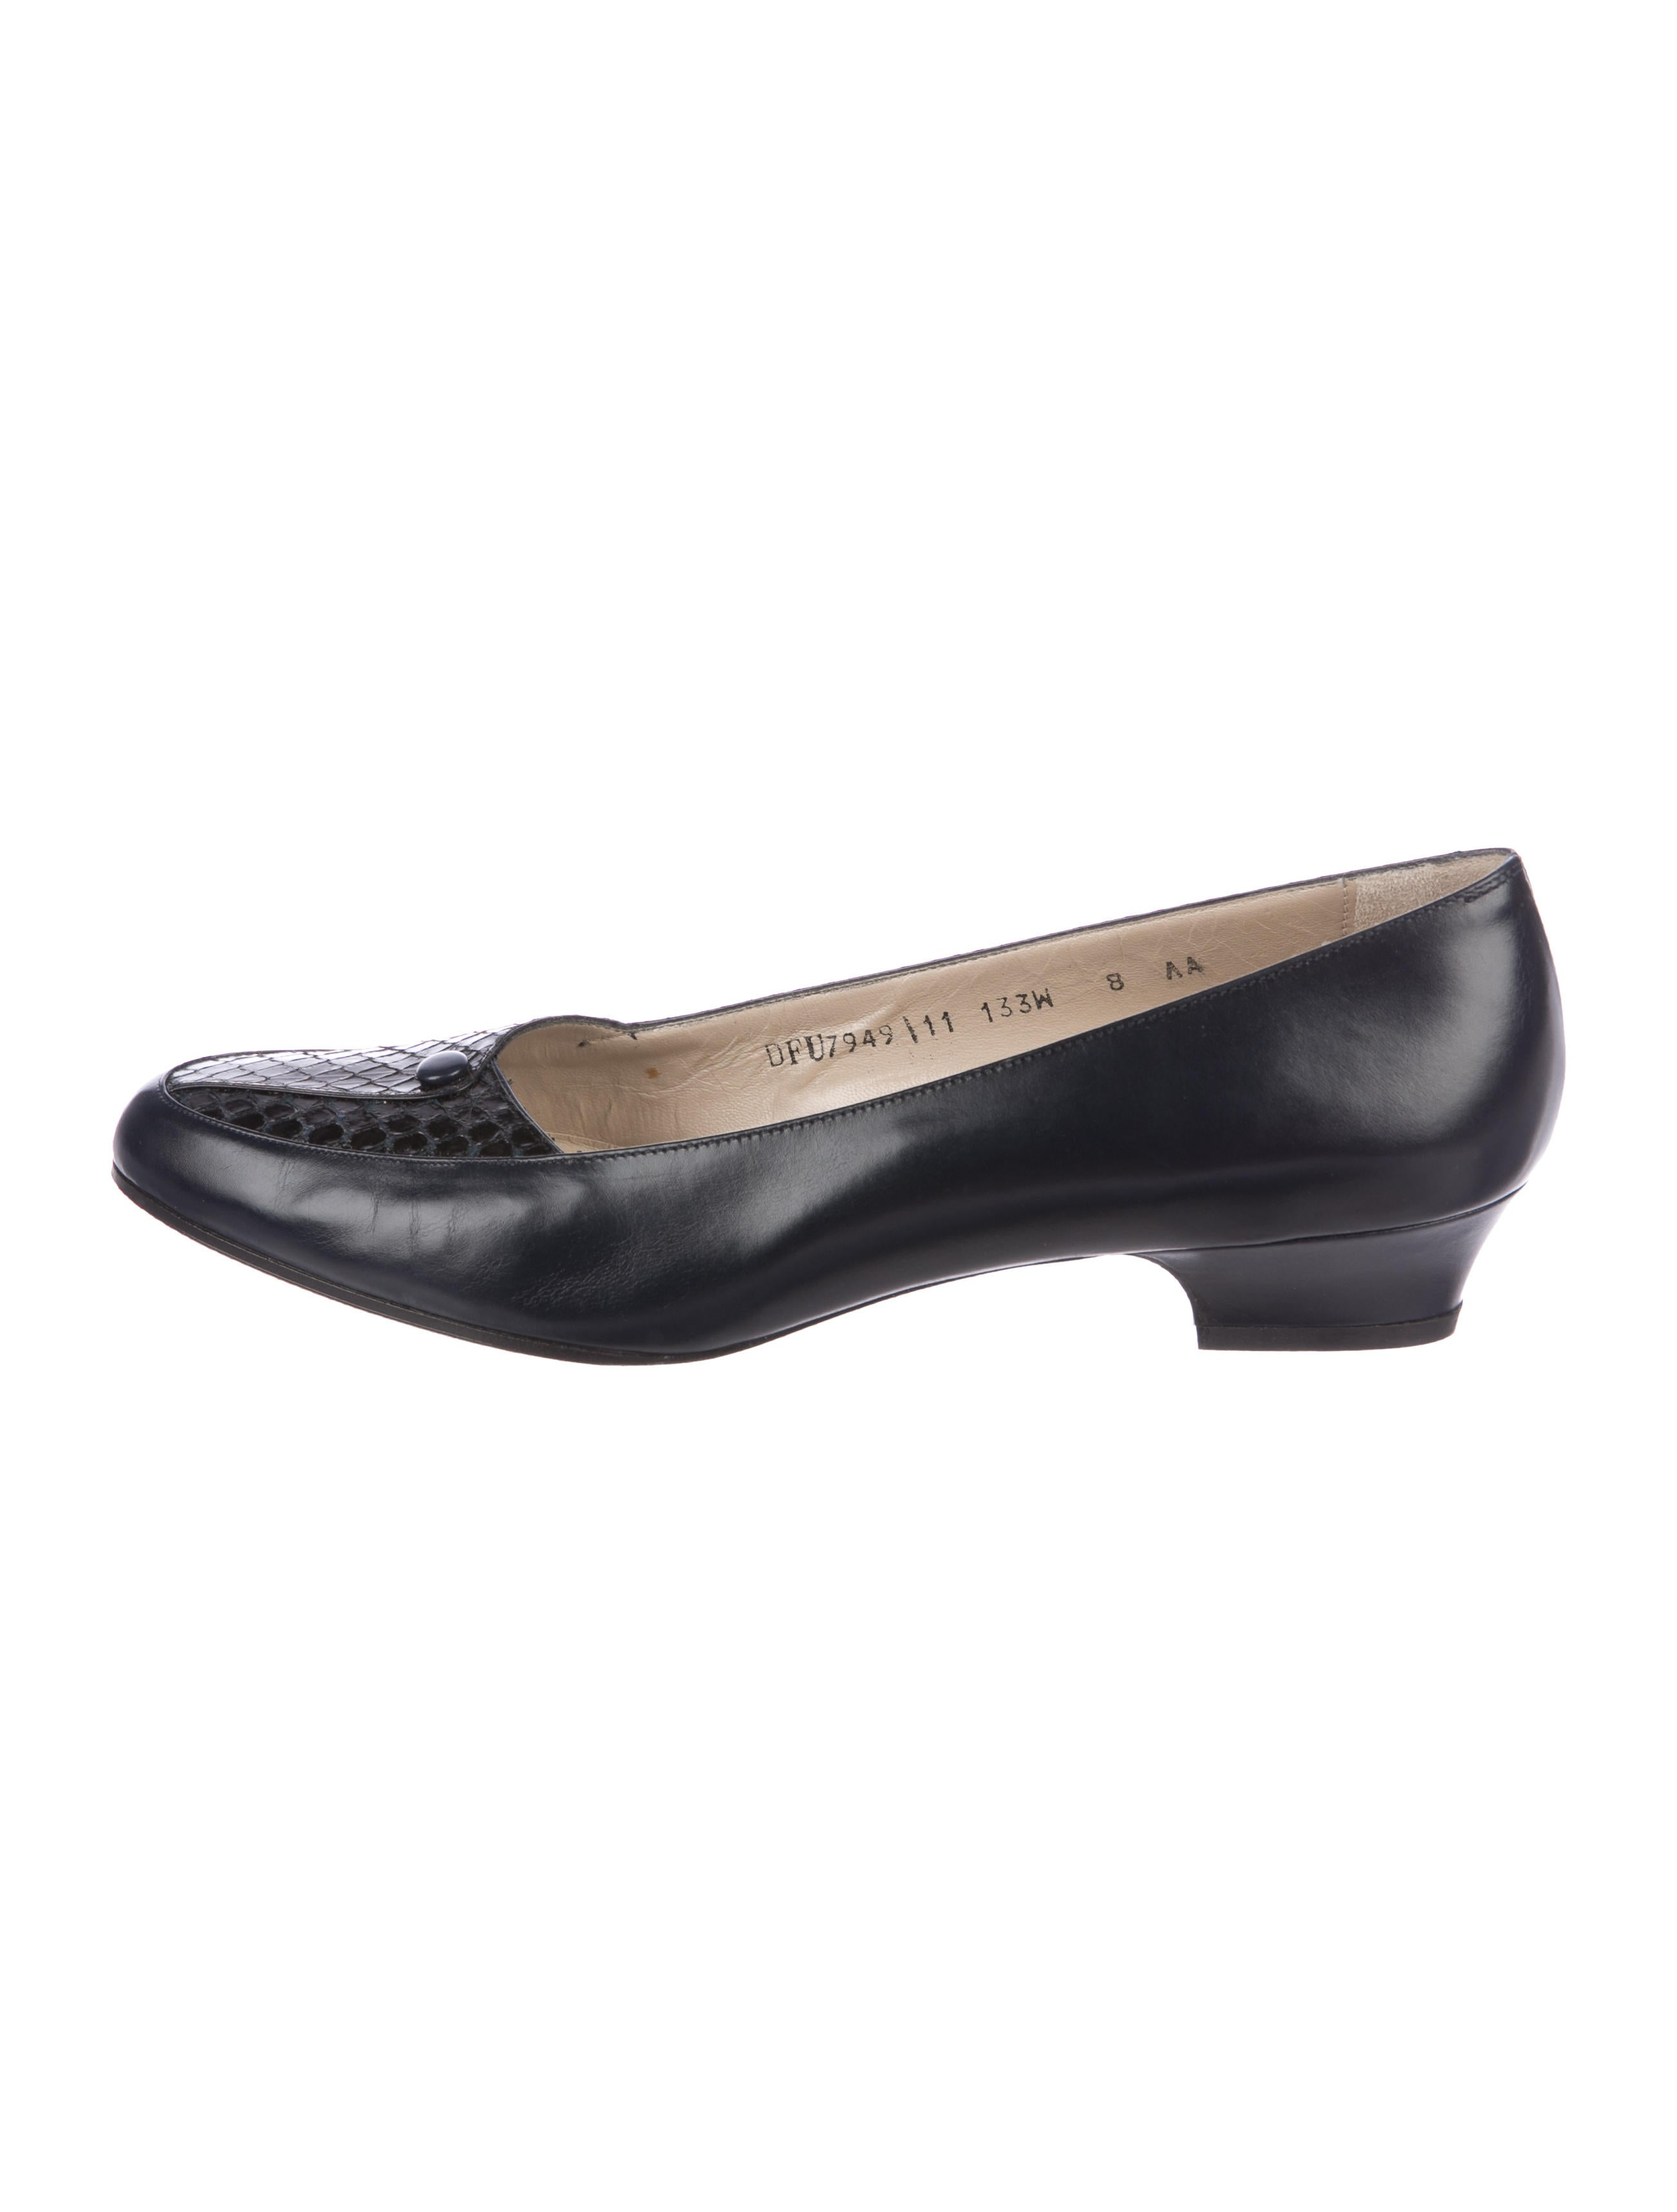 Salvatore Ferragamo Fiandra Leather Pumps pay with visa cheap price with credit card free shipping reliable sale online nhk9vO3